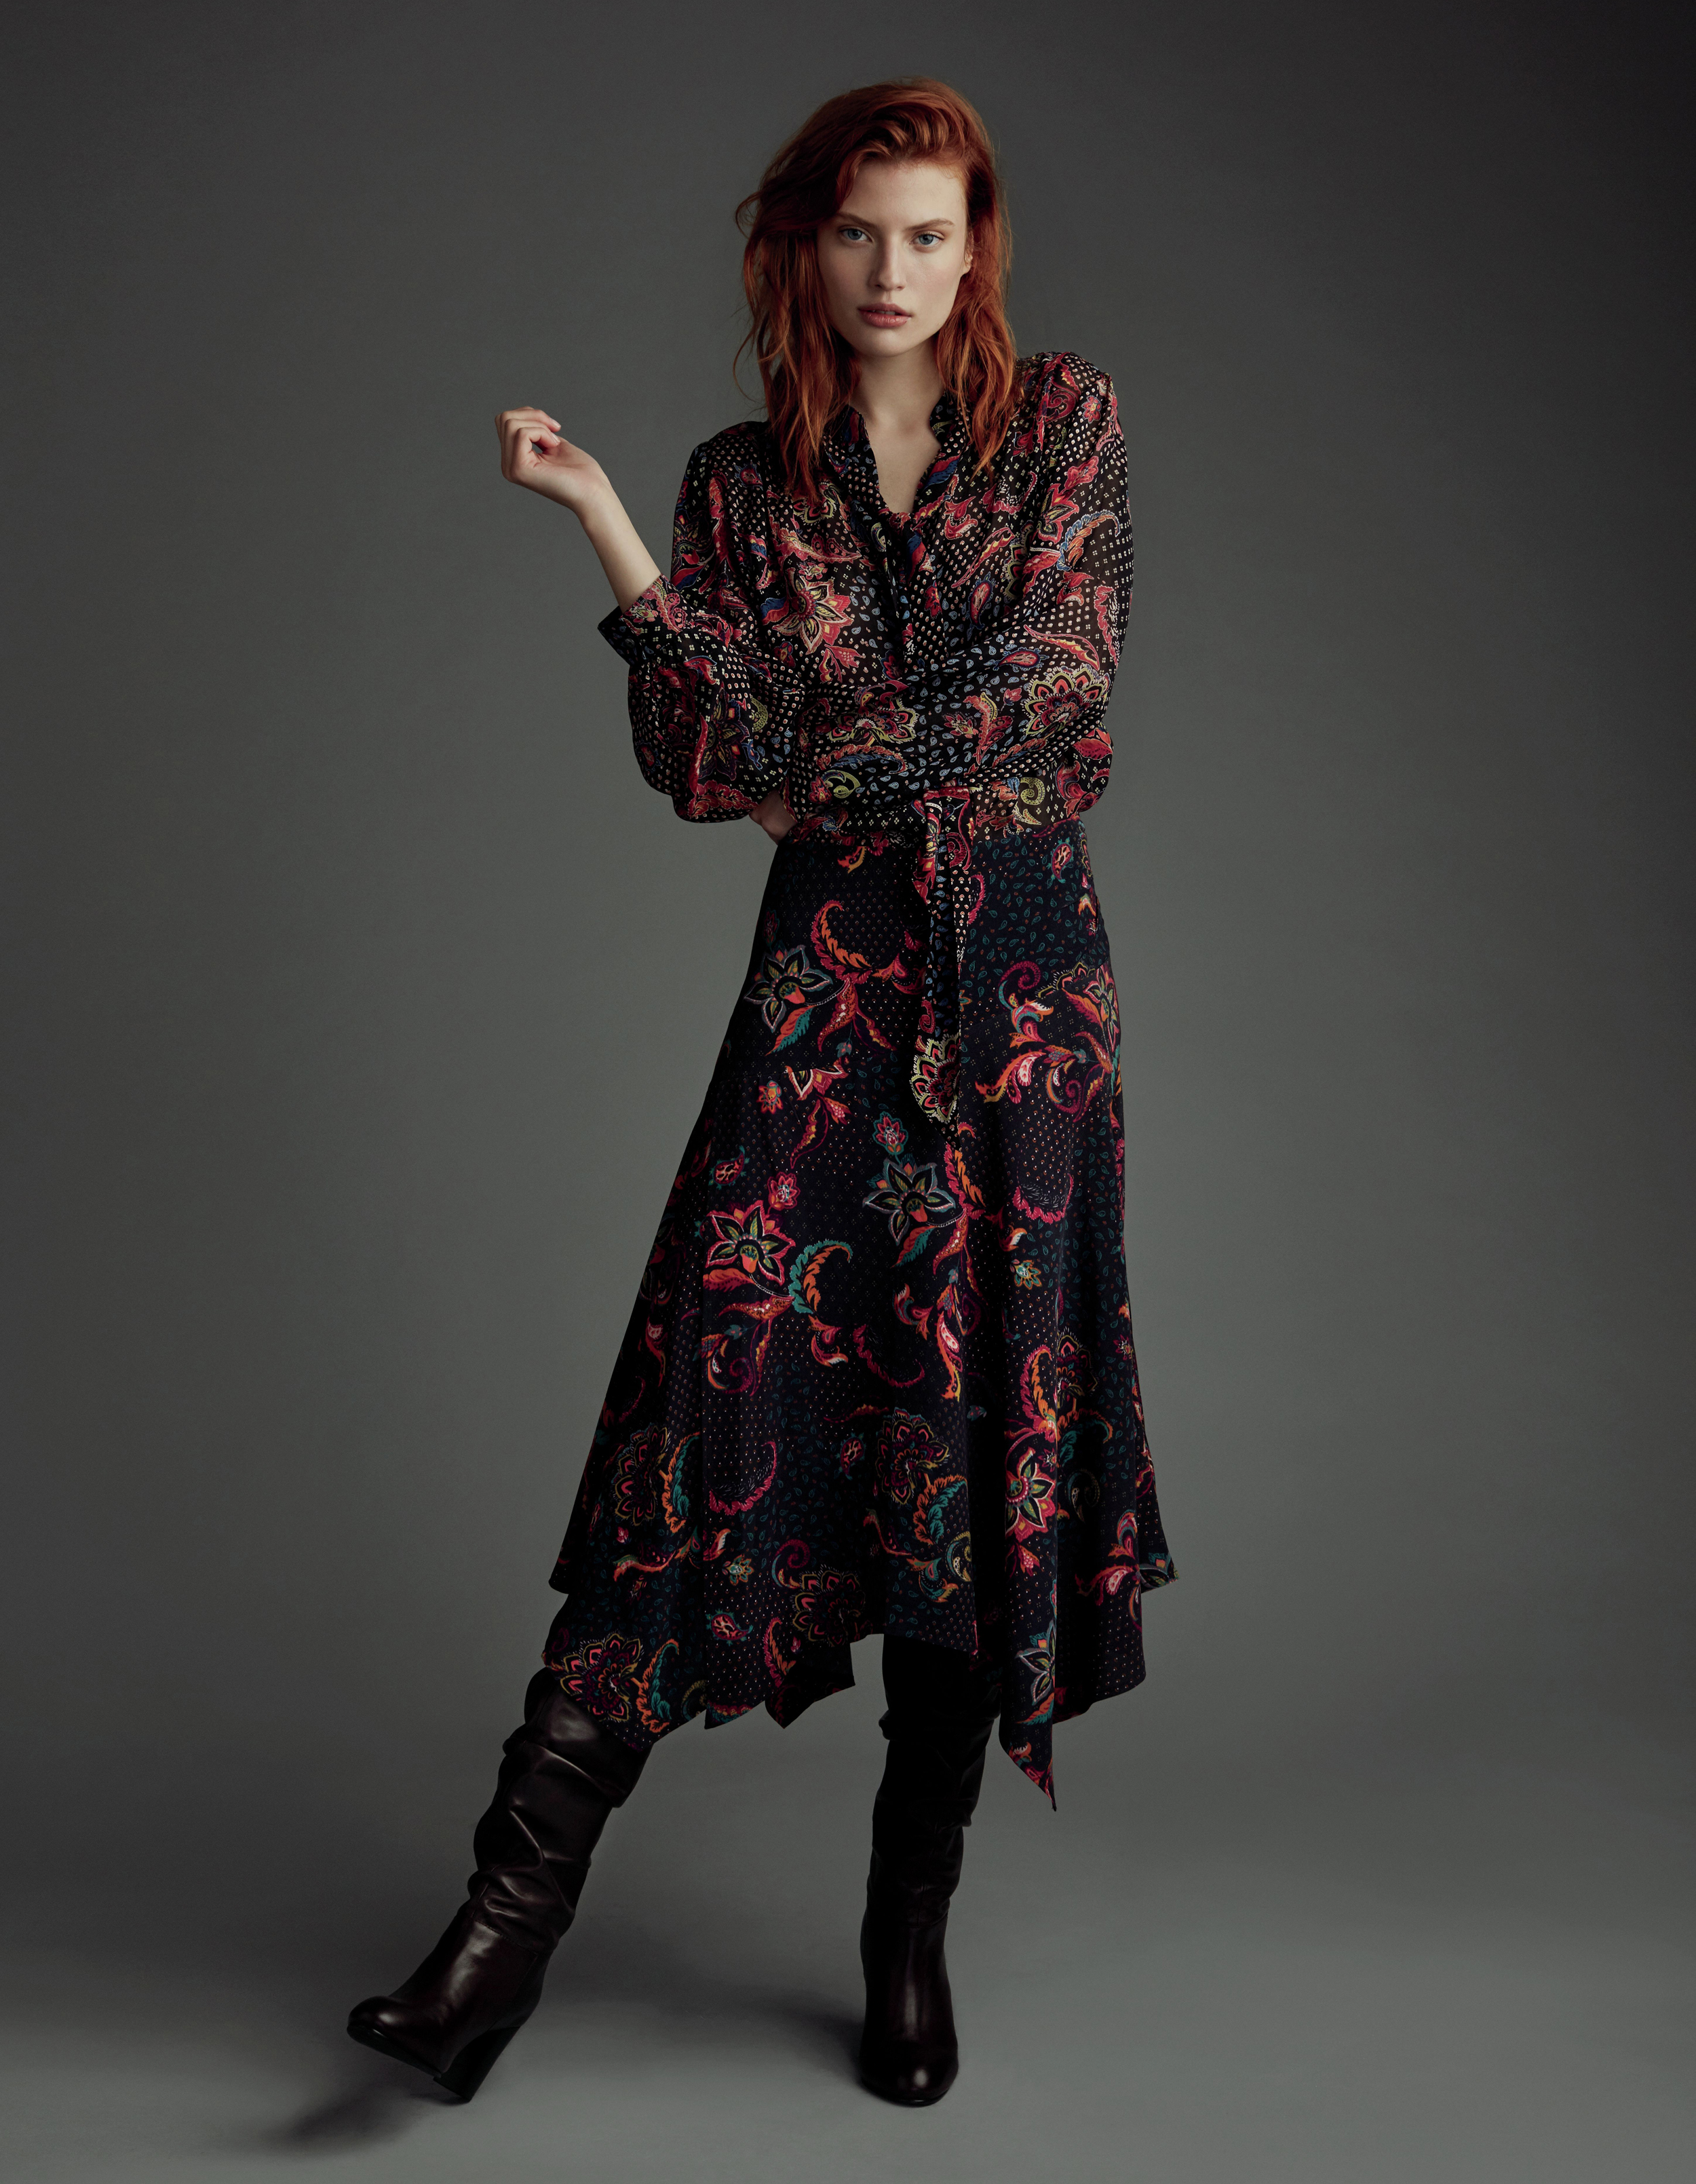 Wearing Boots With Long Dresses